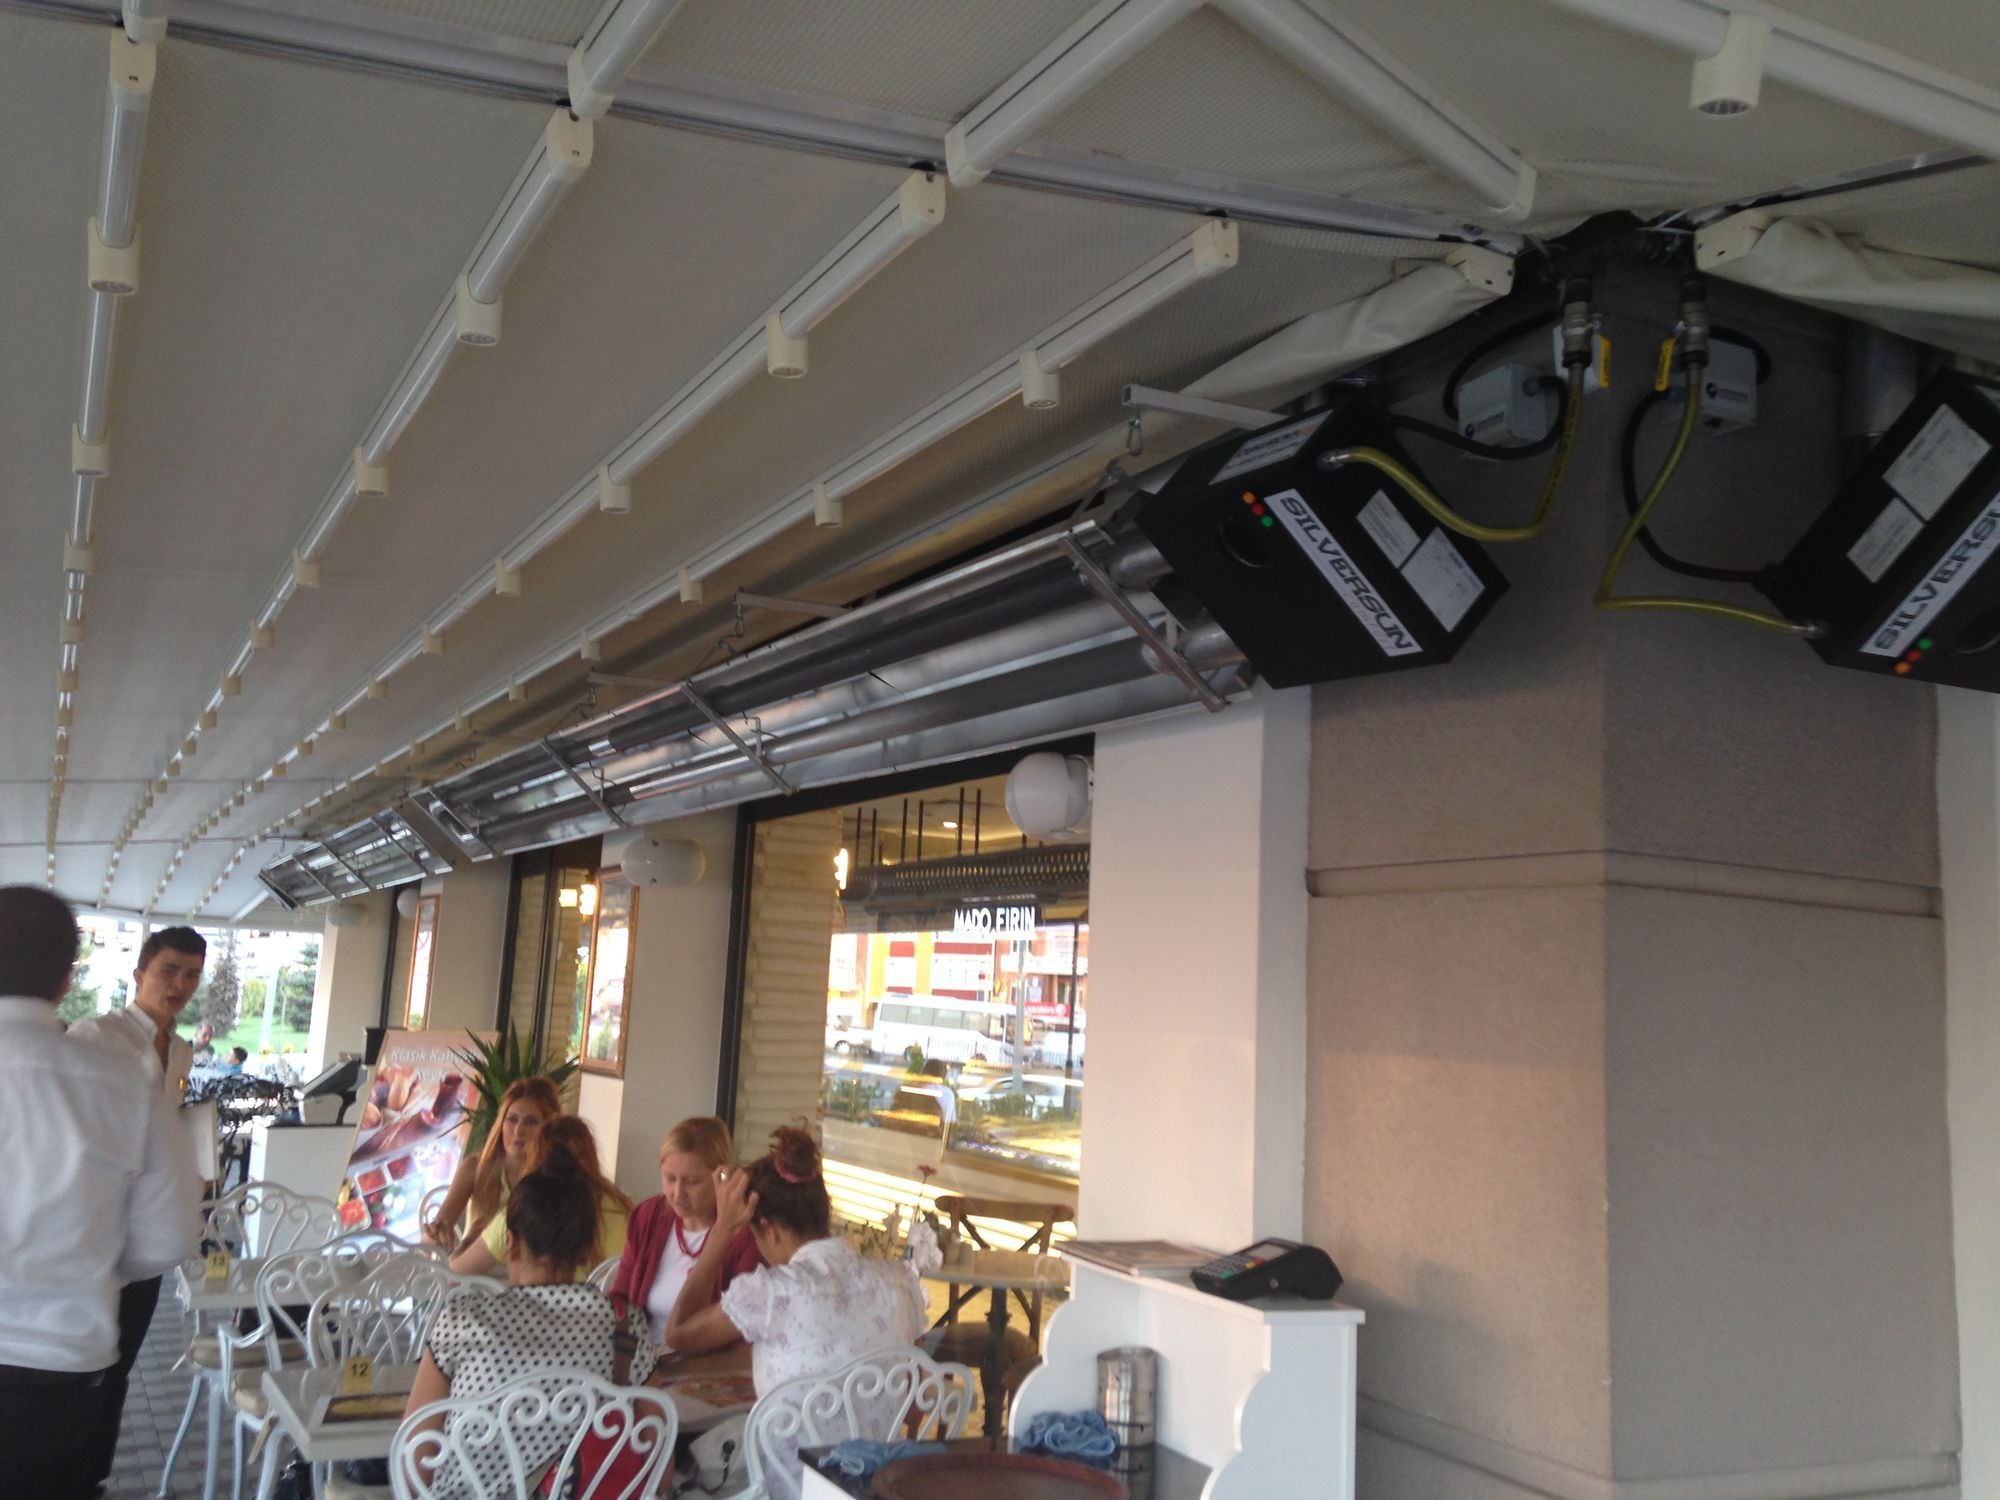 Hanging Infrared Heater / Ceiling / Gas / Commercial SILVERSUN COMFORT  Cukurova Heating Systems ...